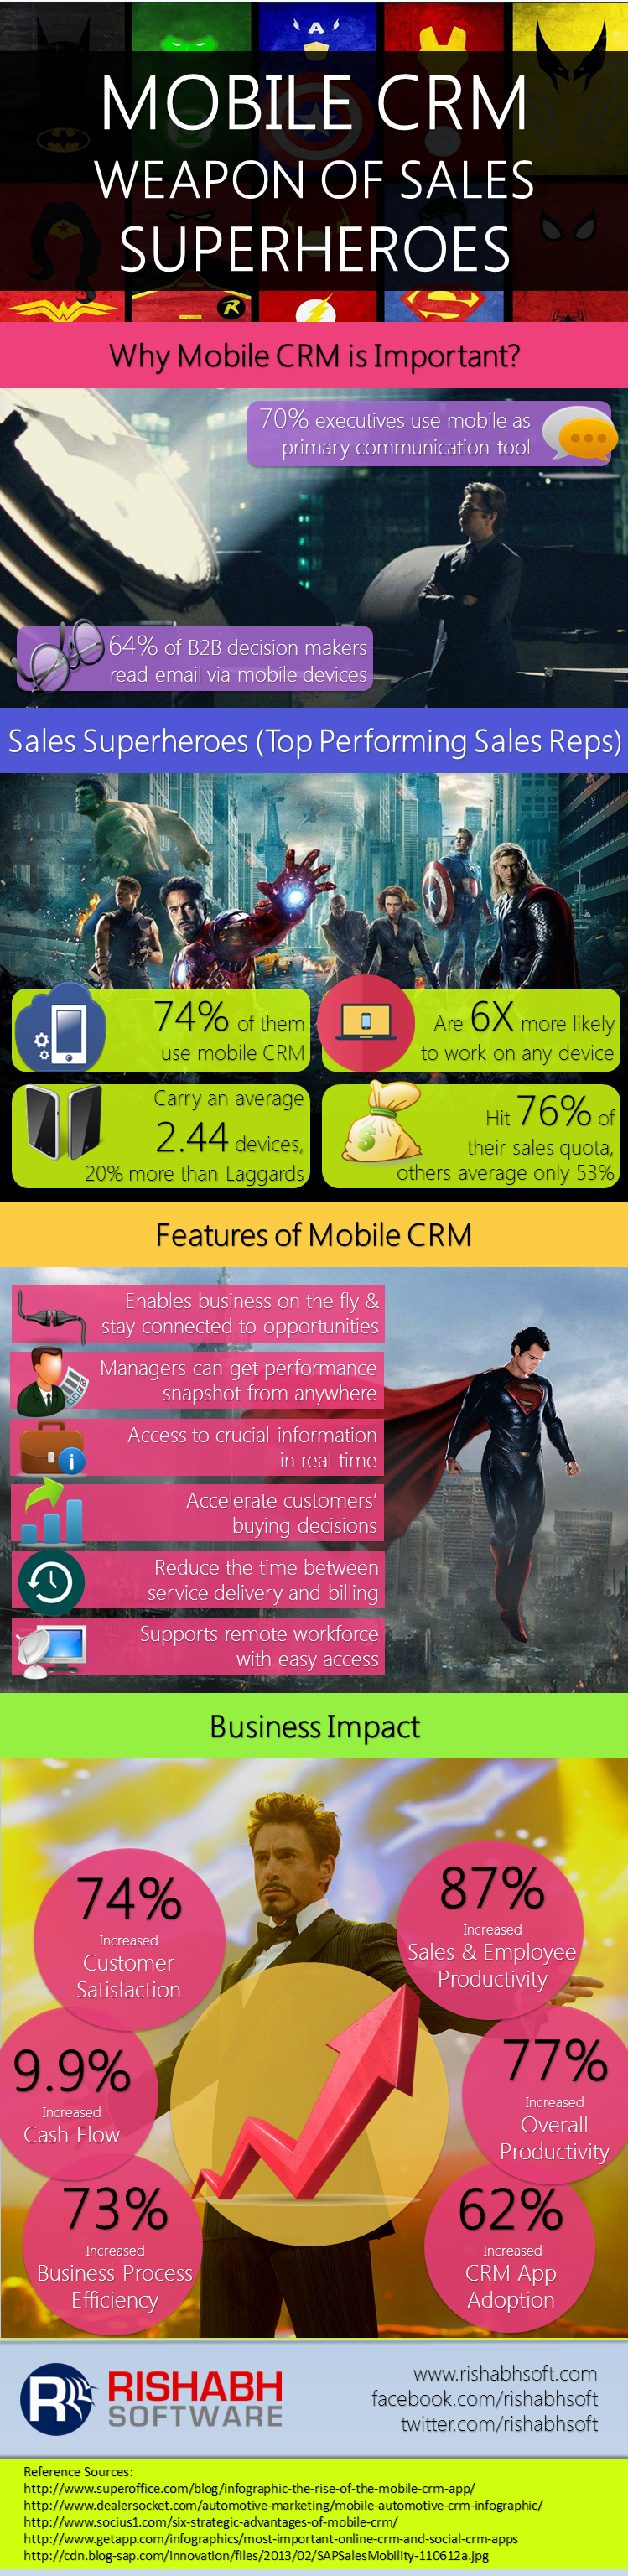 Mobile CRM - Weapon of Sales Superheroes